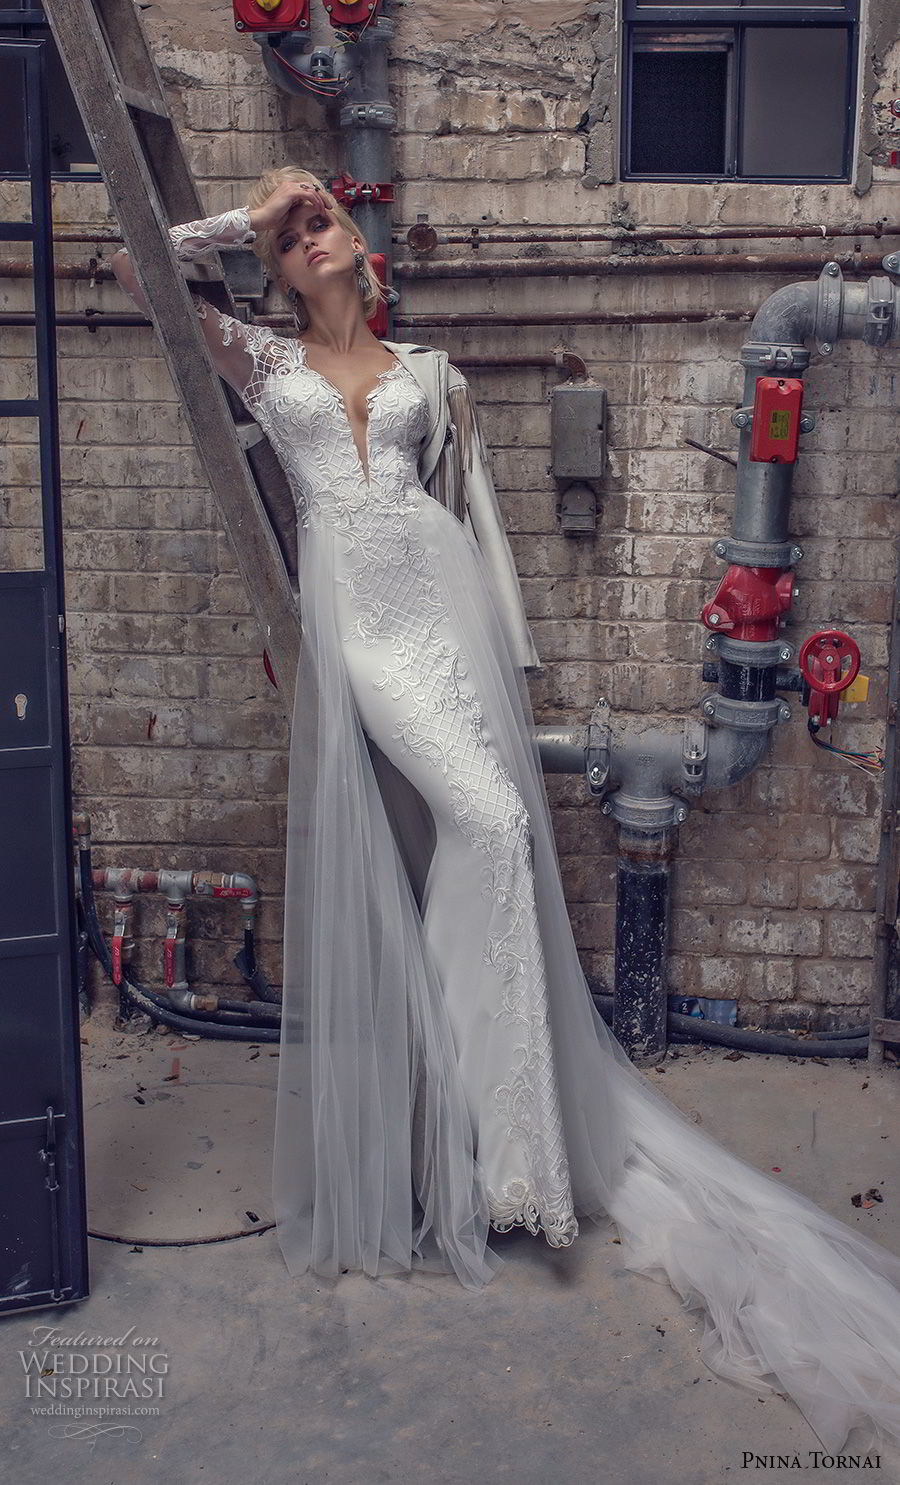 pnina tornai 2019 love bridal long sleeves deep plunging v neck full embellishment elegant fit and flare wedding dress a line overskirt chapel train (9) mv